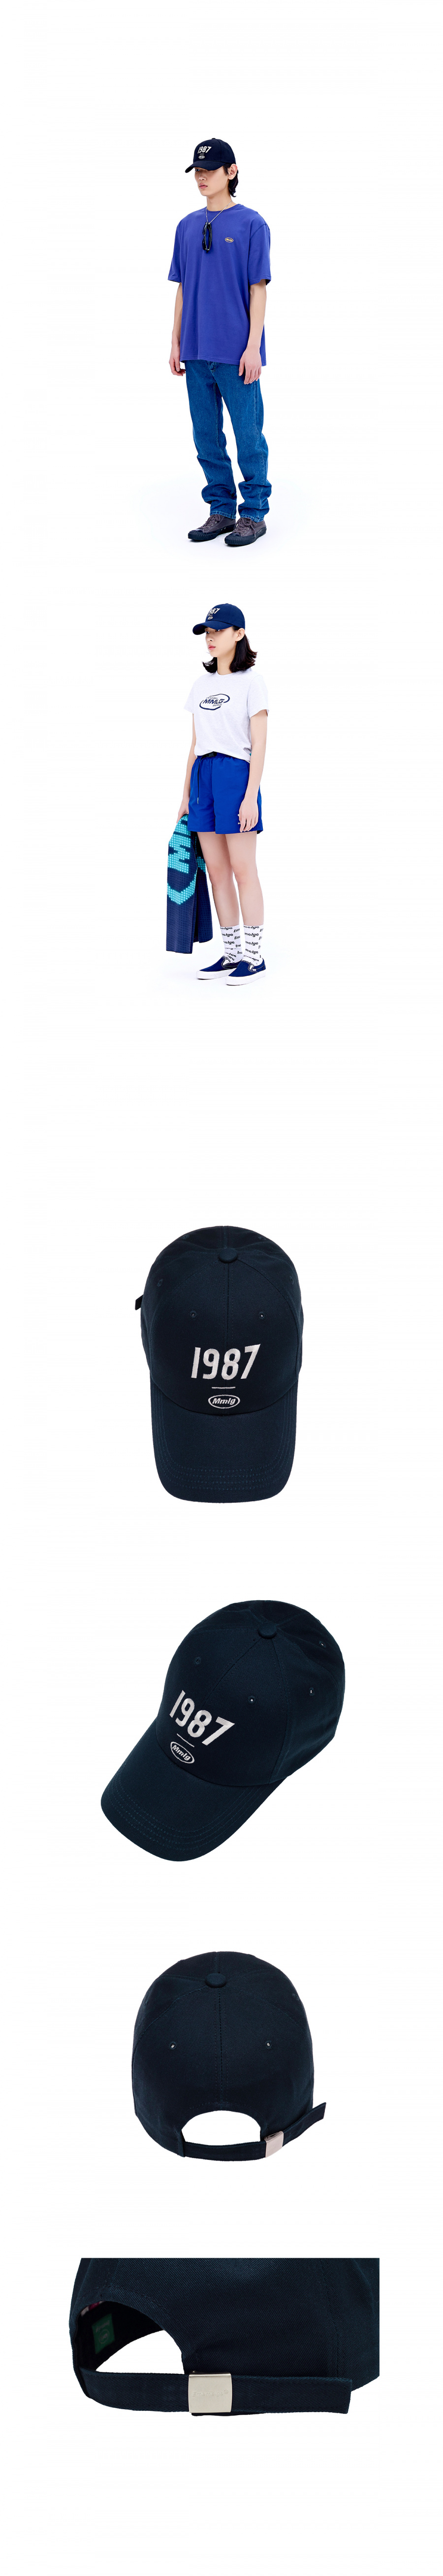 팔칠엠엠(87MM) [Mmlg] 1987MMLG BALLCAP (NAVY)